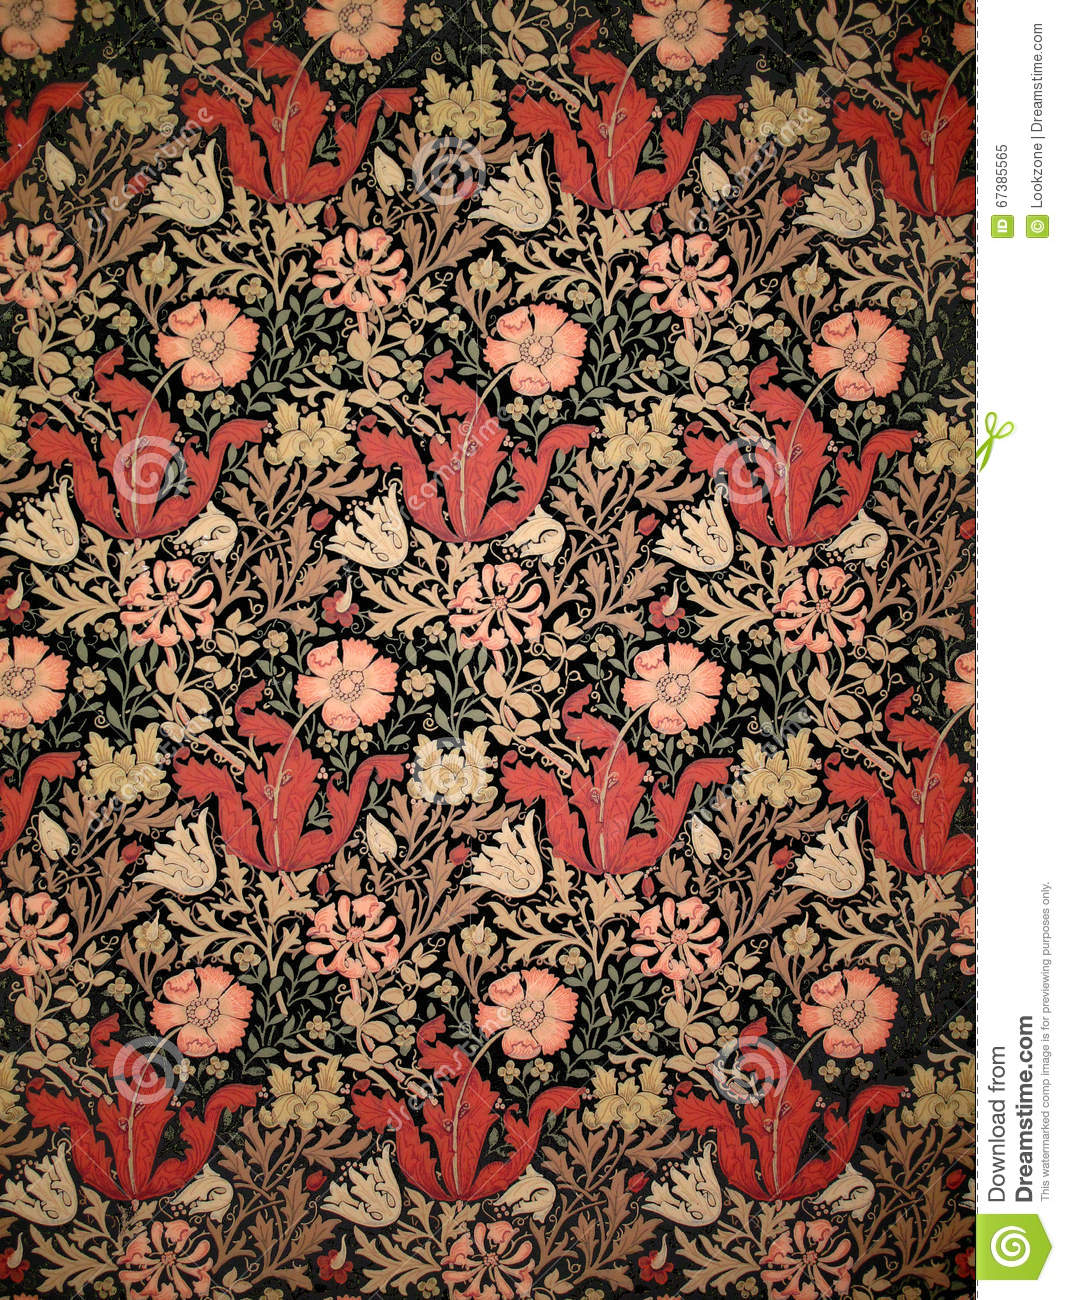 Old William Morris Wallpaper Stock Image Image Of Aged